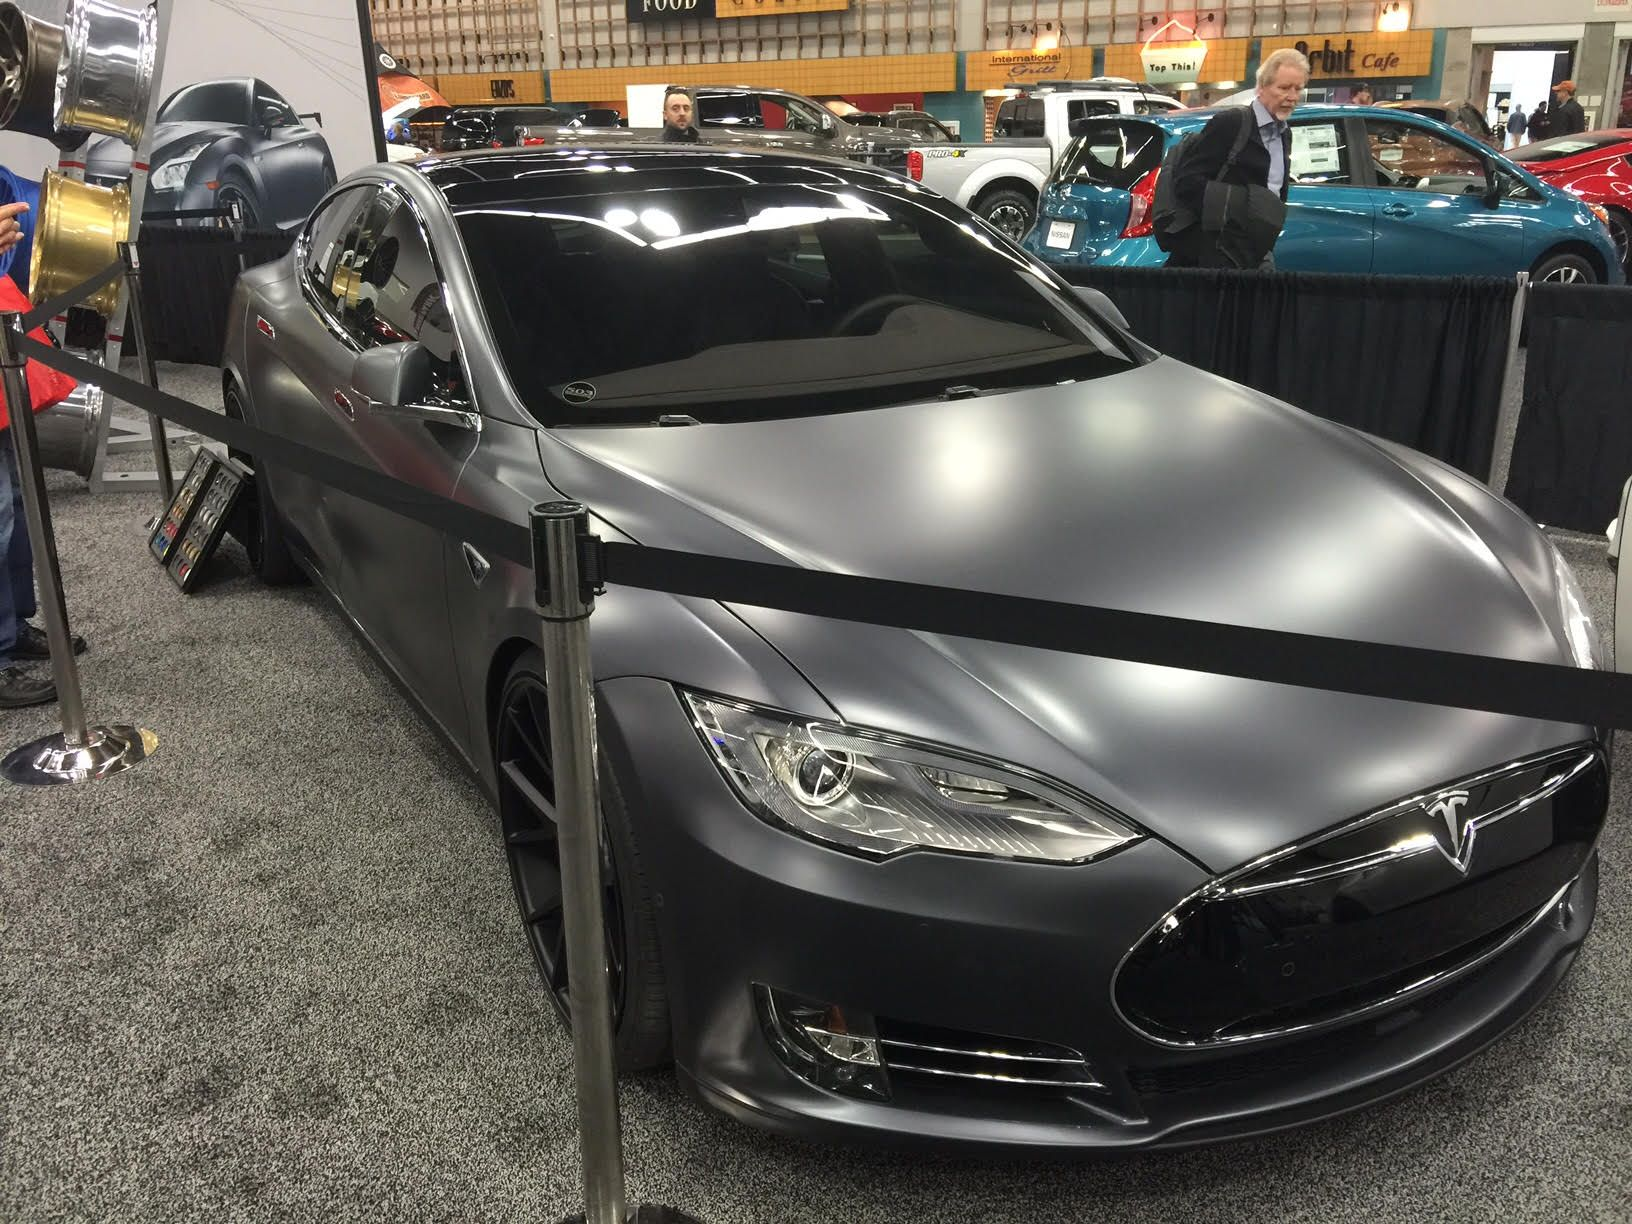 Tesla model s tricked out by 503 motoring at the portland auto show